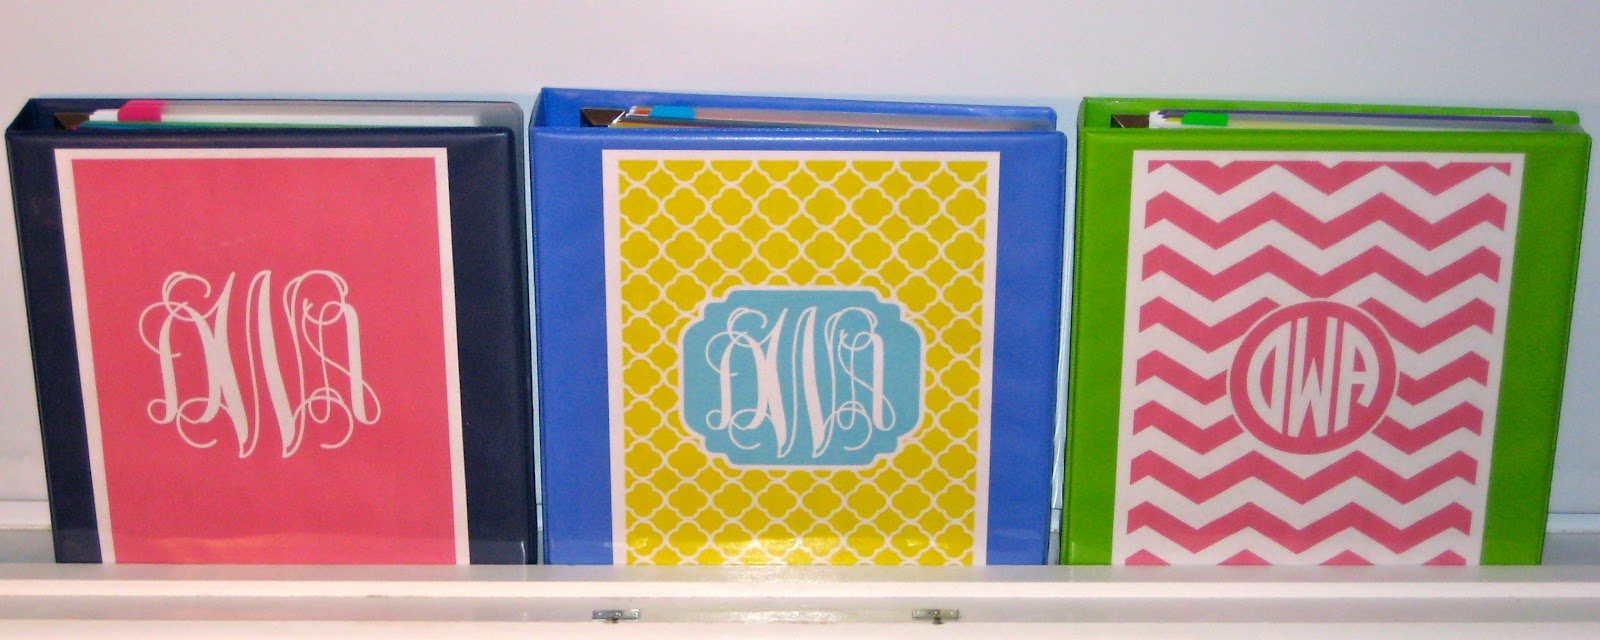 Prep In Your Step Perfectly Preppy And Incredibly Organized School